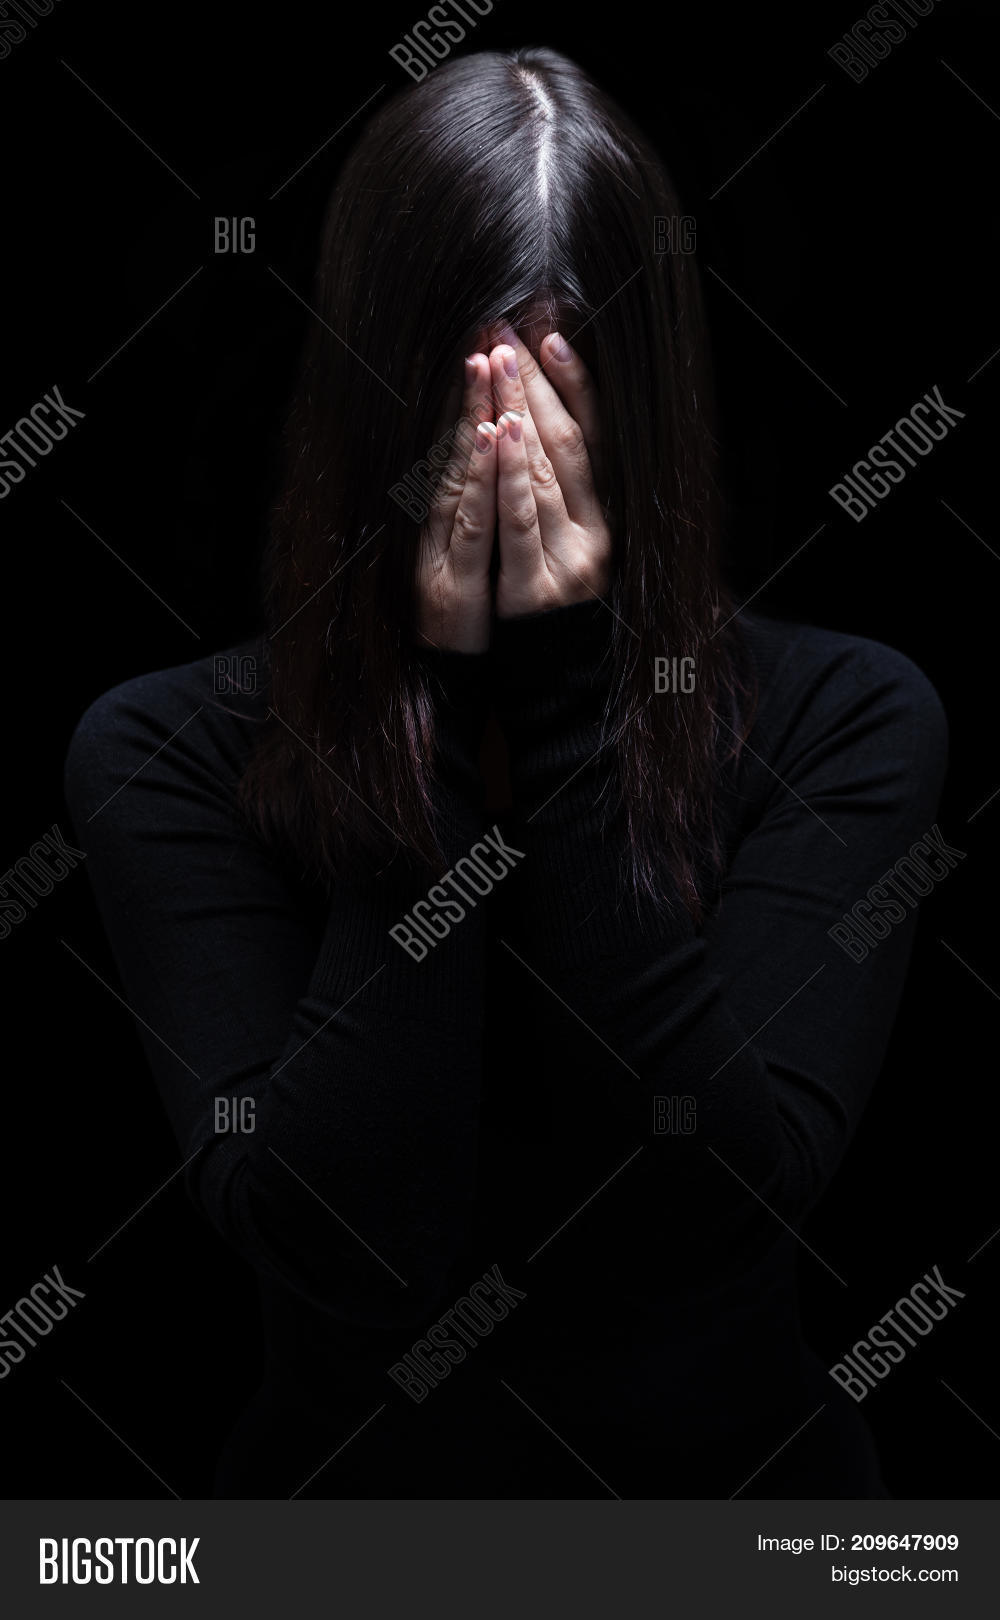 Emotional Woman Crying Image Photo Free Trial Bigstock